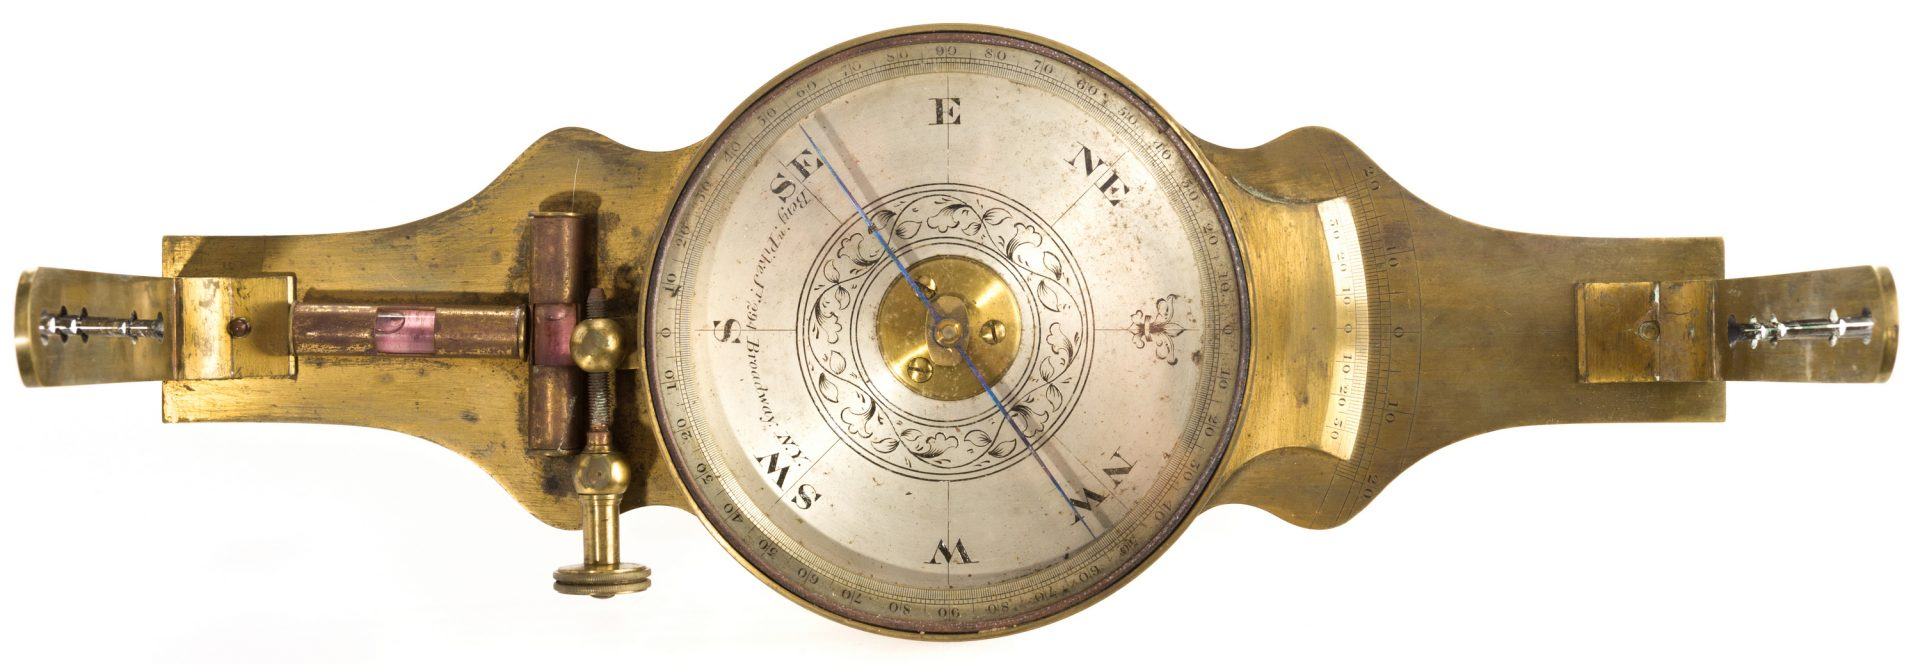 Lot 709: 19th Cent. Brass Surveyor's Compass, Benjamin Pike